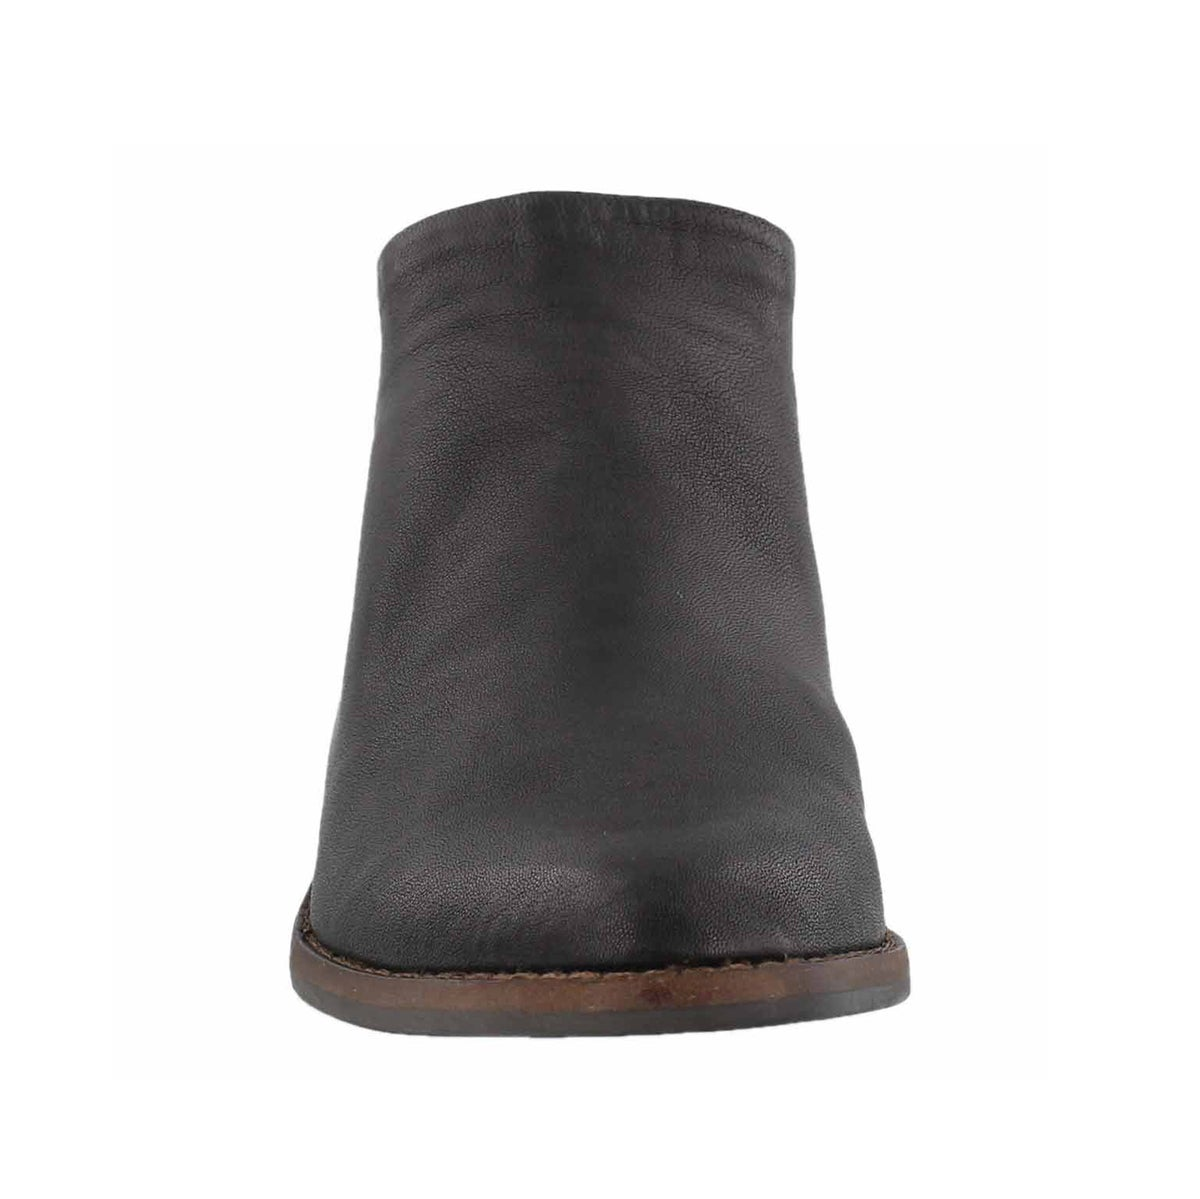 Lds Fai black zip up low casual bootie